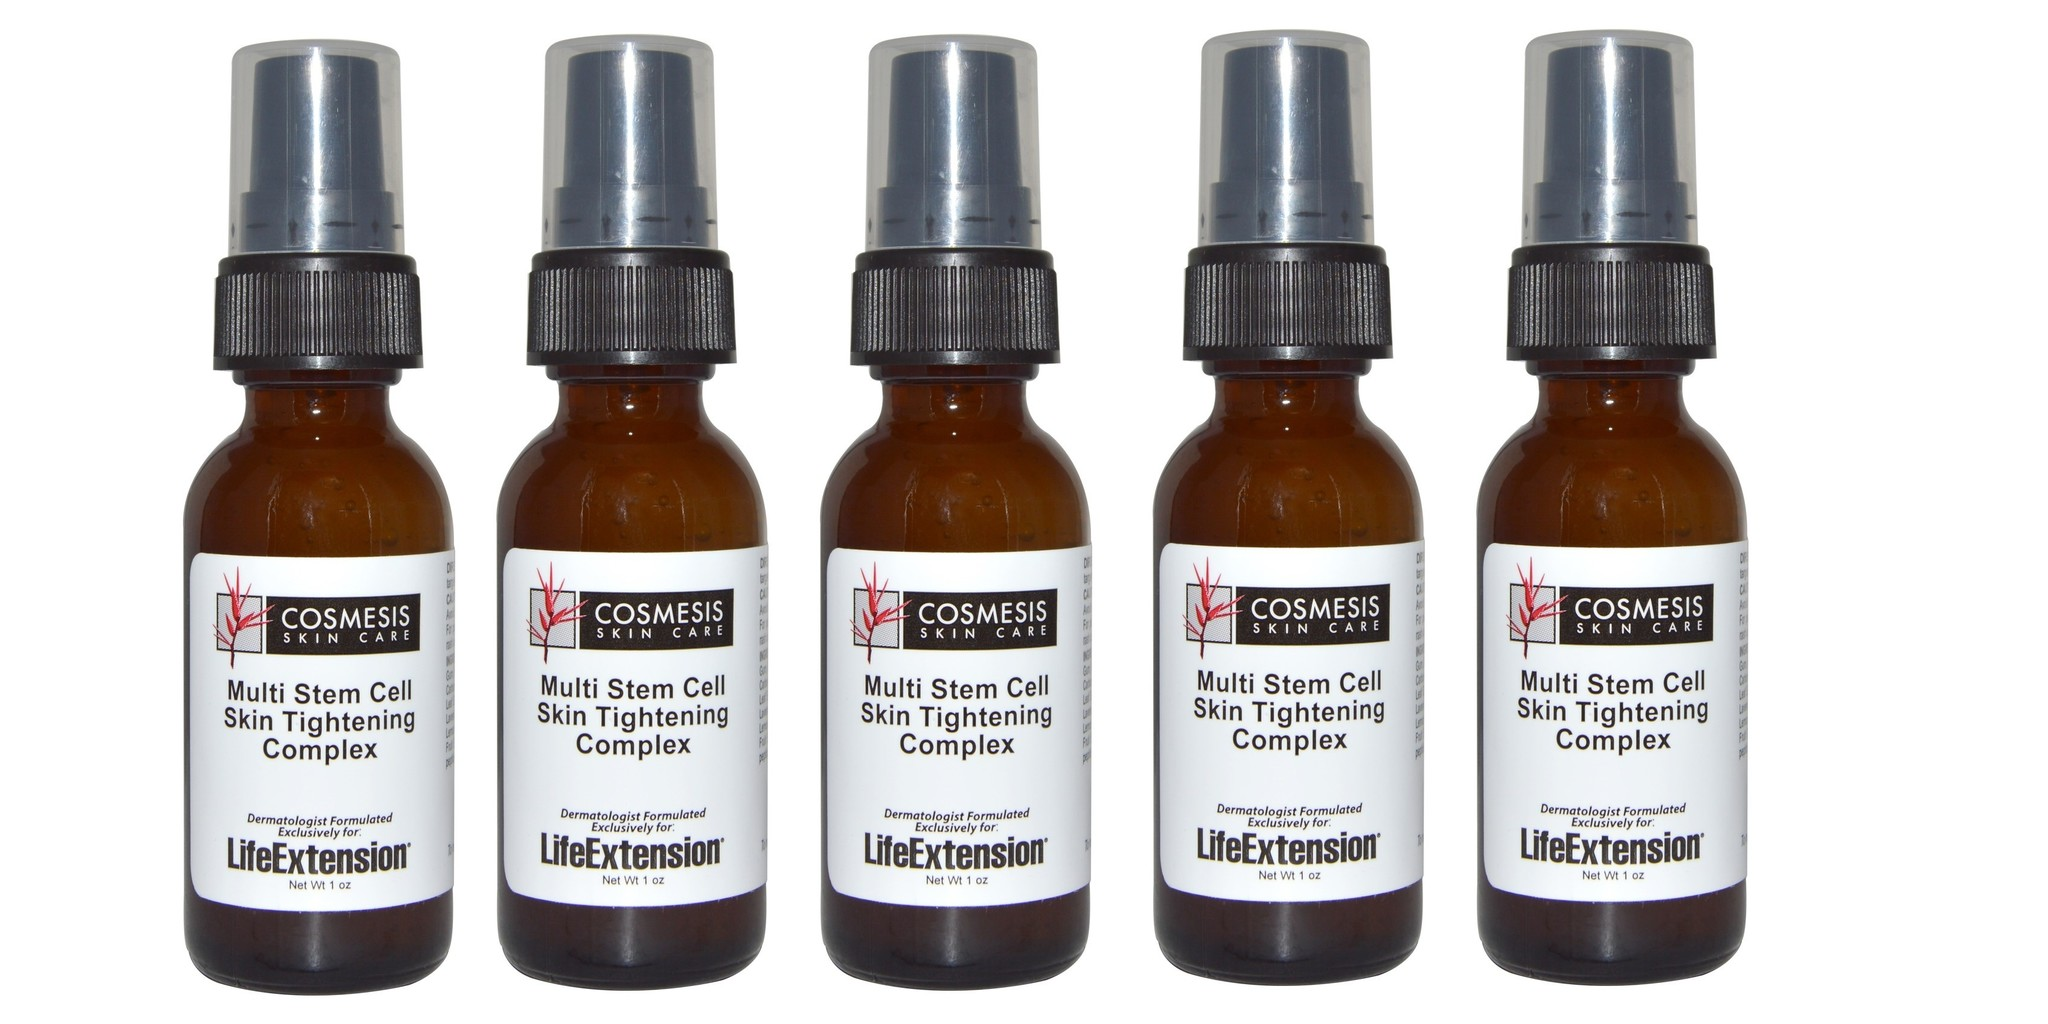 Life Extension Multi Stem Cell Skin Tightening Complex, 1 oz., 5-pack